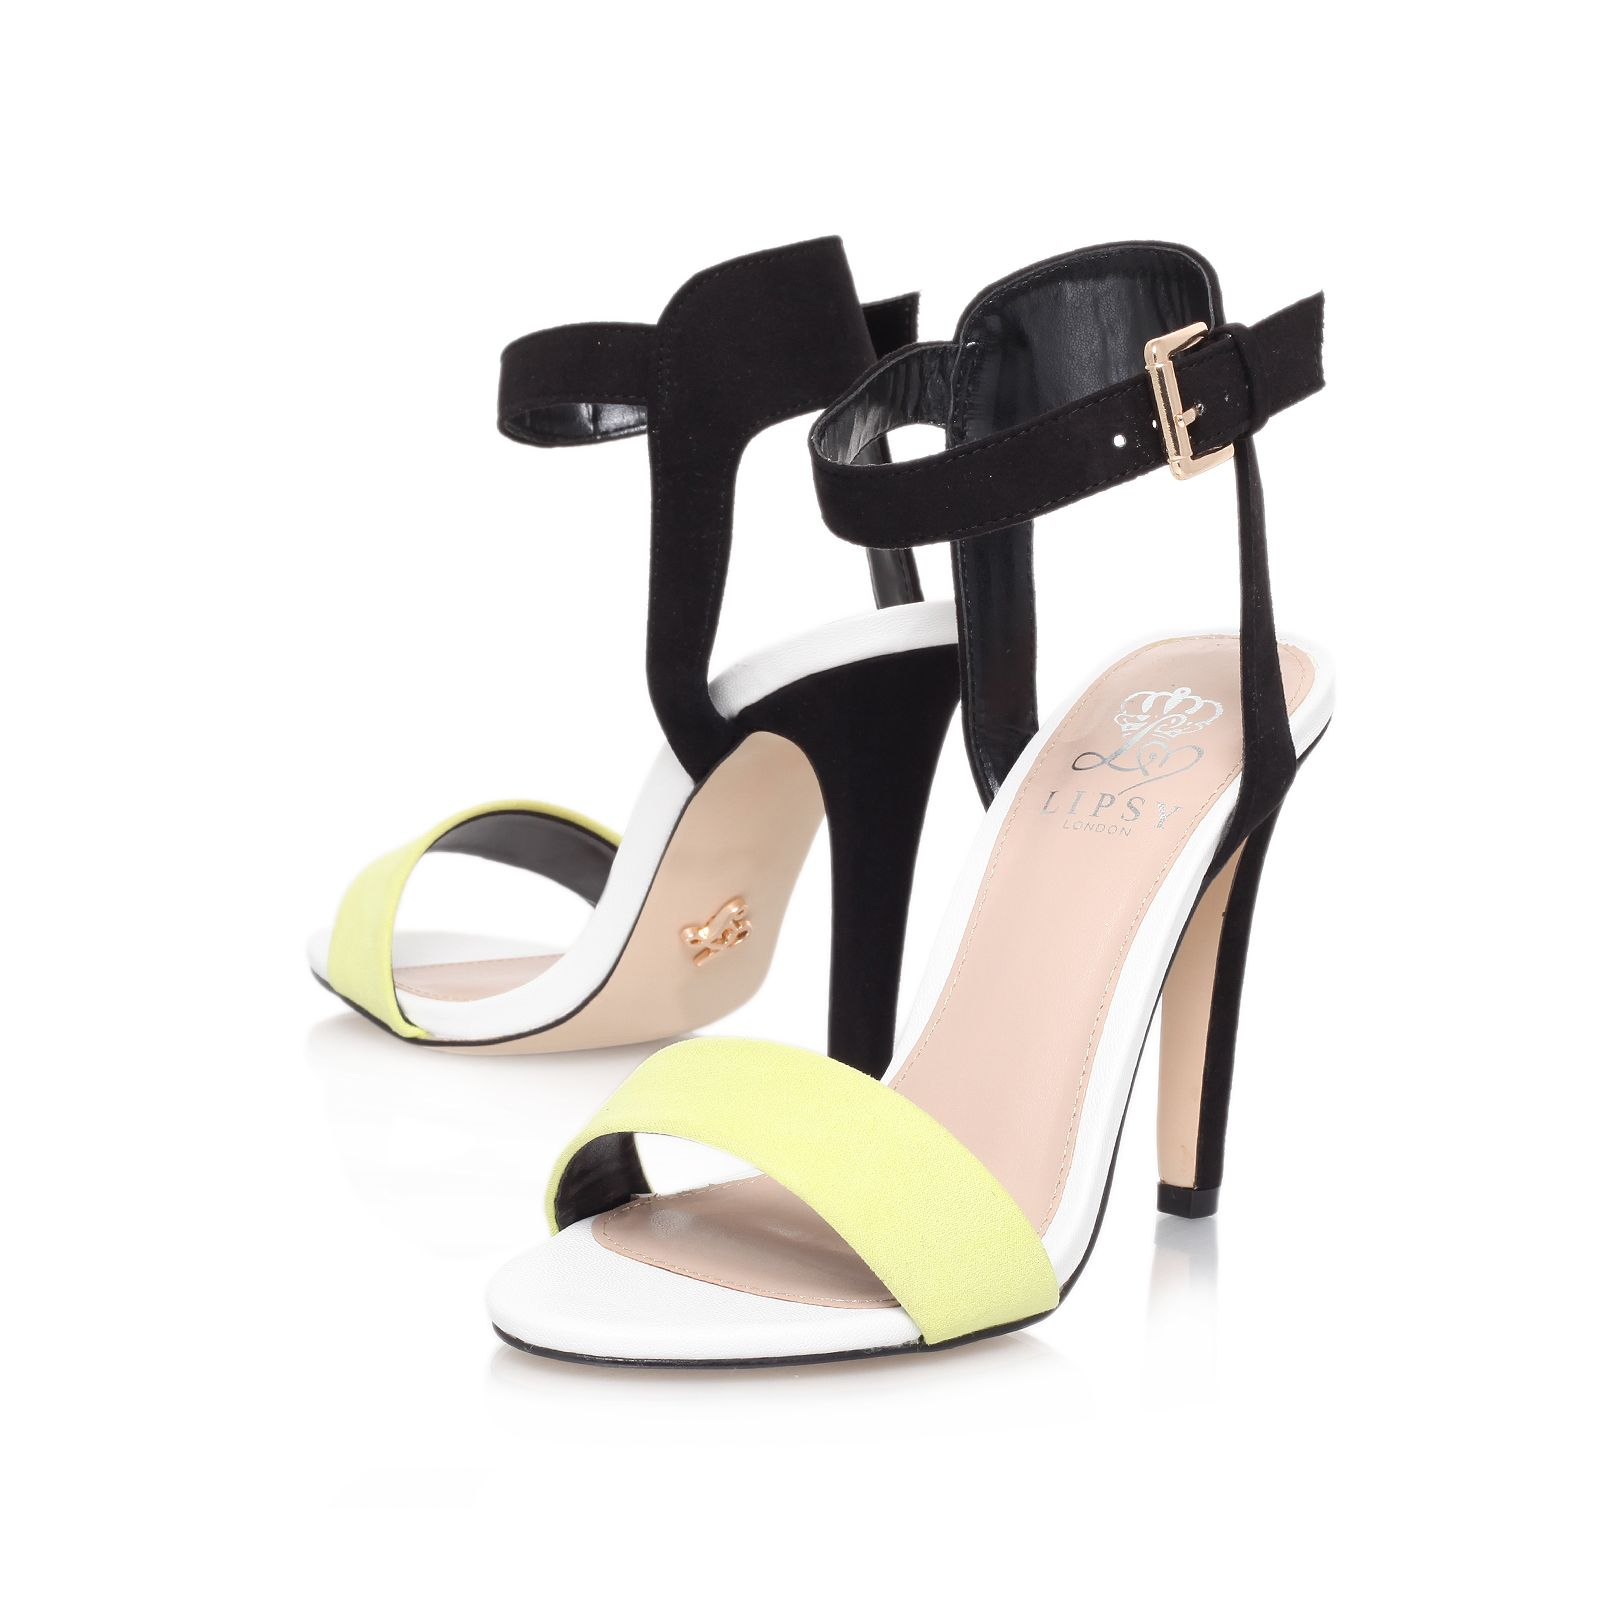 Claudia high heel sandals